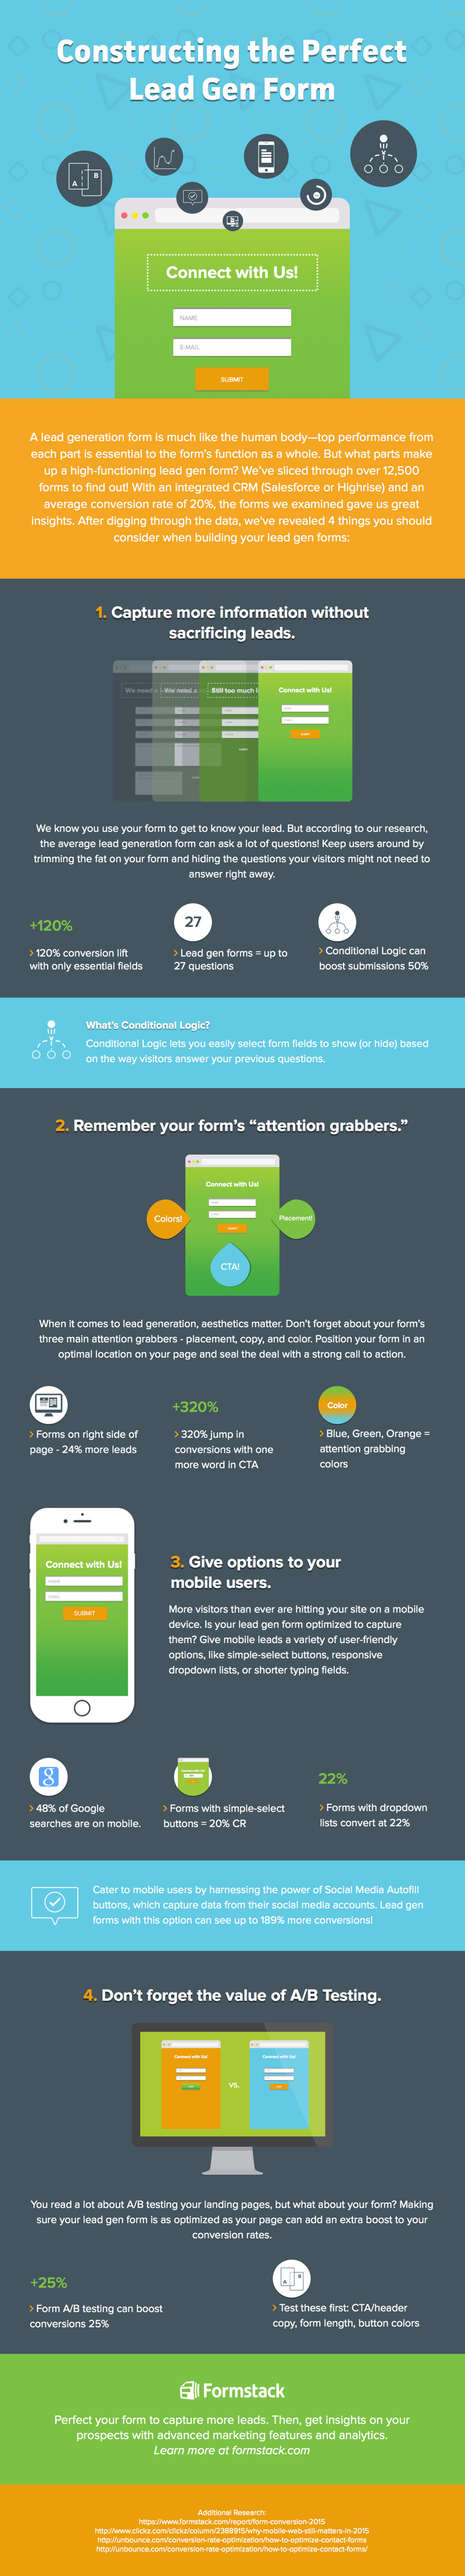 How to construct the perfect lead gen form - infographic